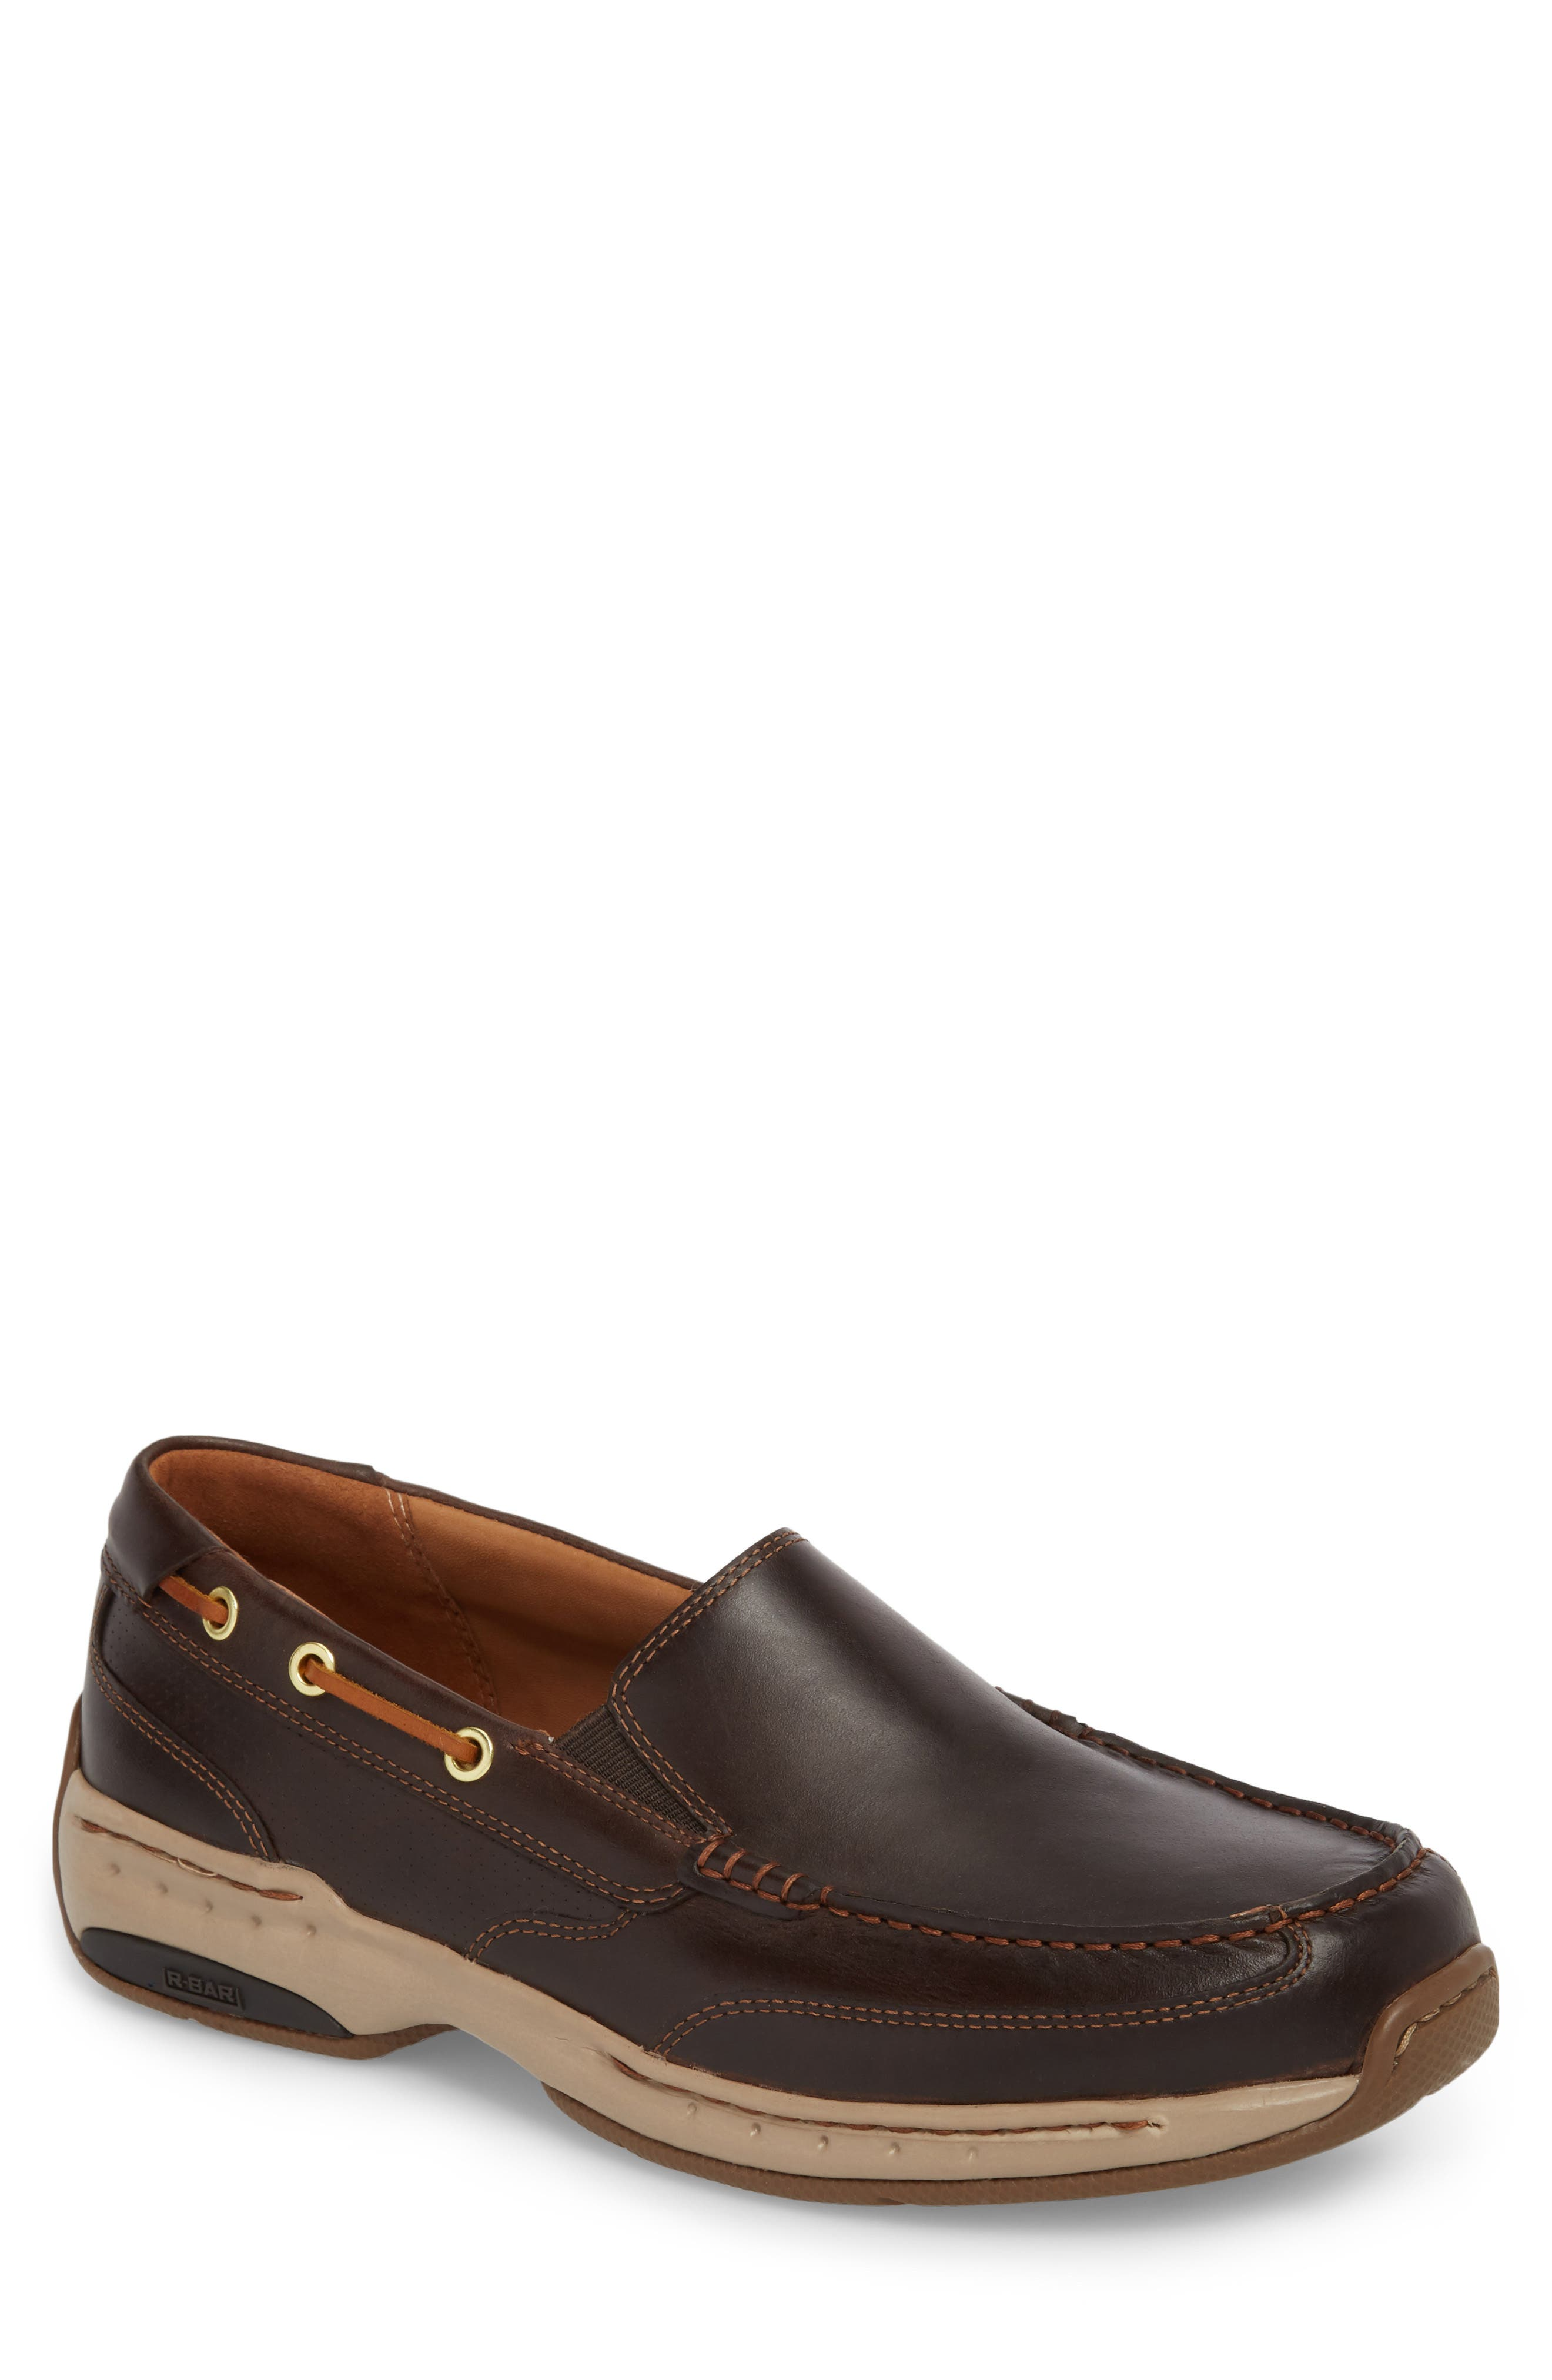 DUNHAM Waterford Water Resistant Slip-On, Main, color, TAN LEATHER